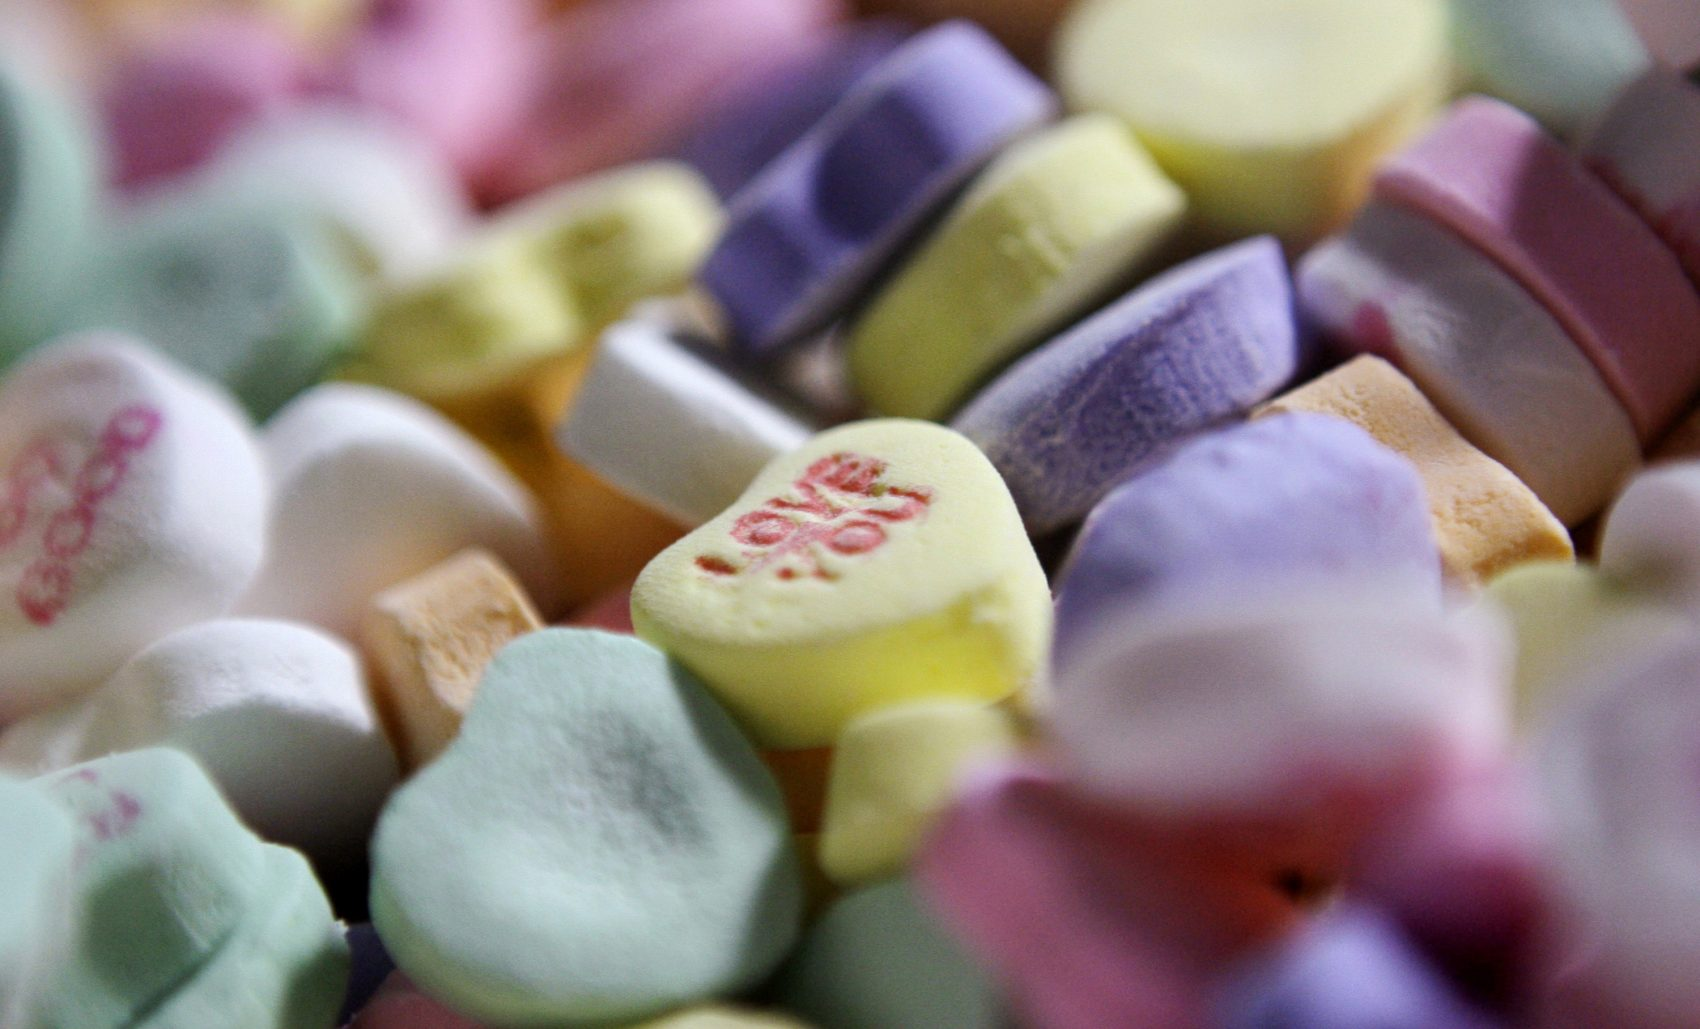 Sweethearts sweets won't be on shelves this Valentine's Day